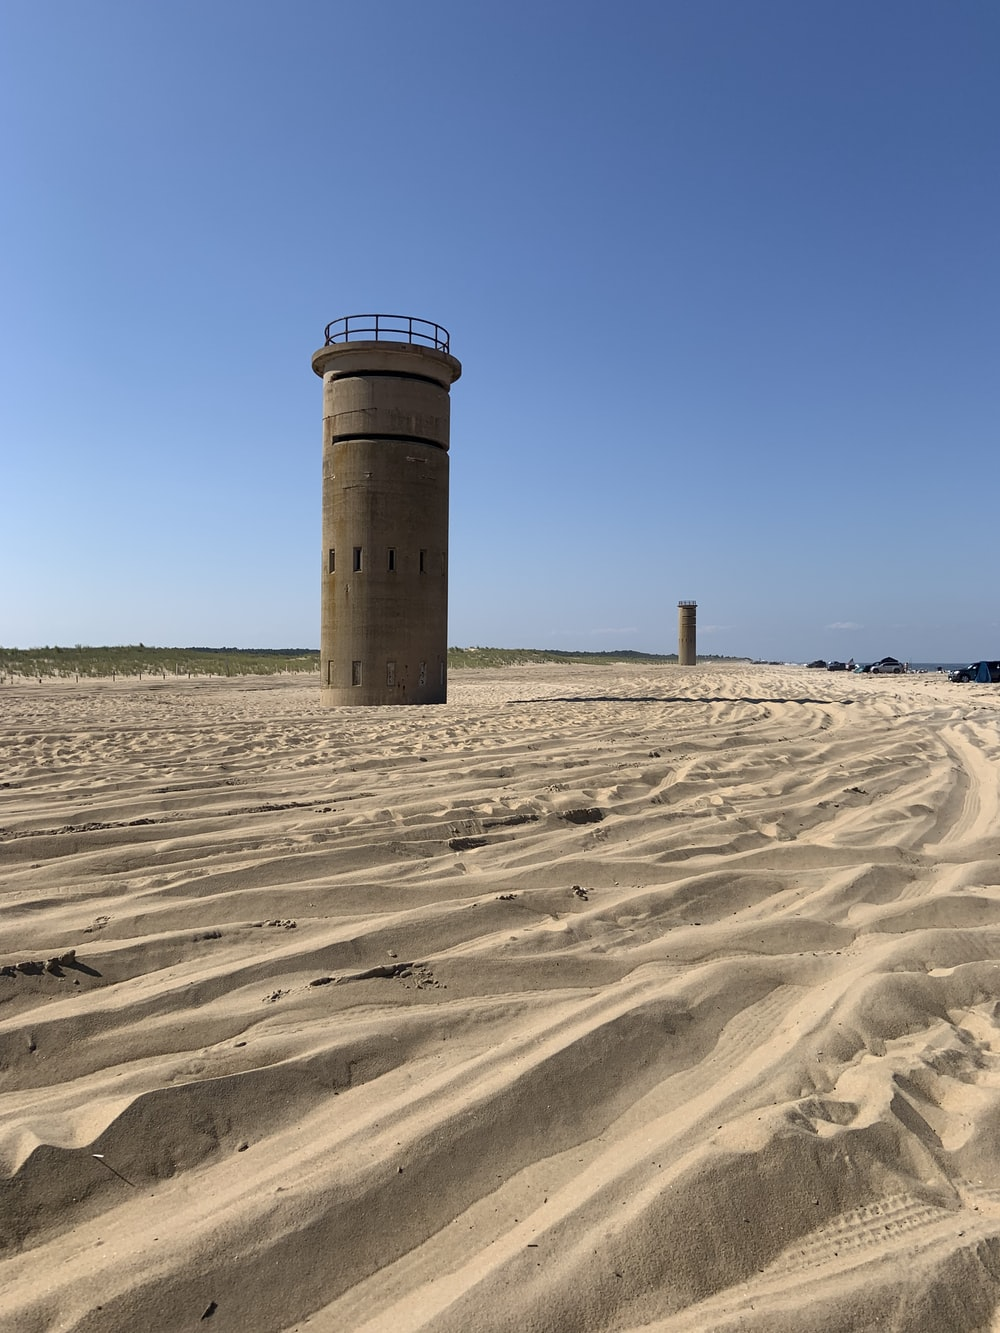 brown concrete tower on brown sand under blue sky during daytime